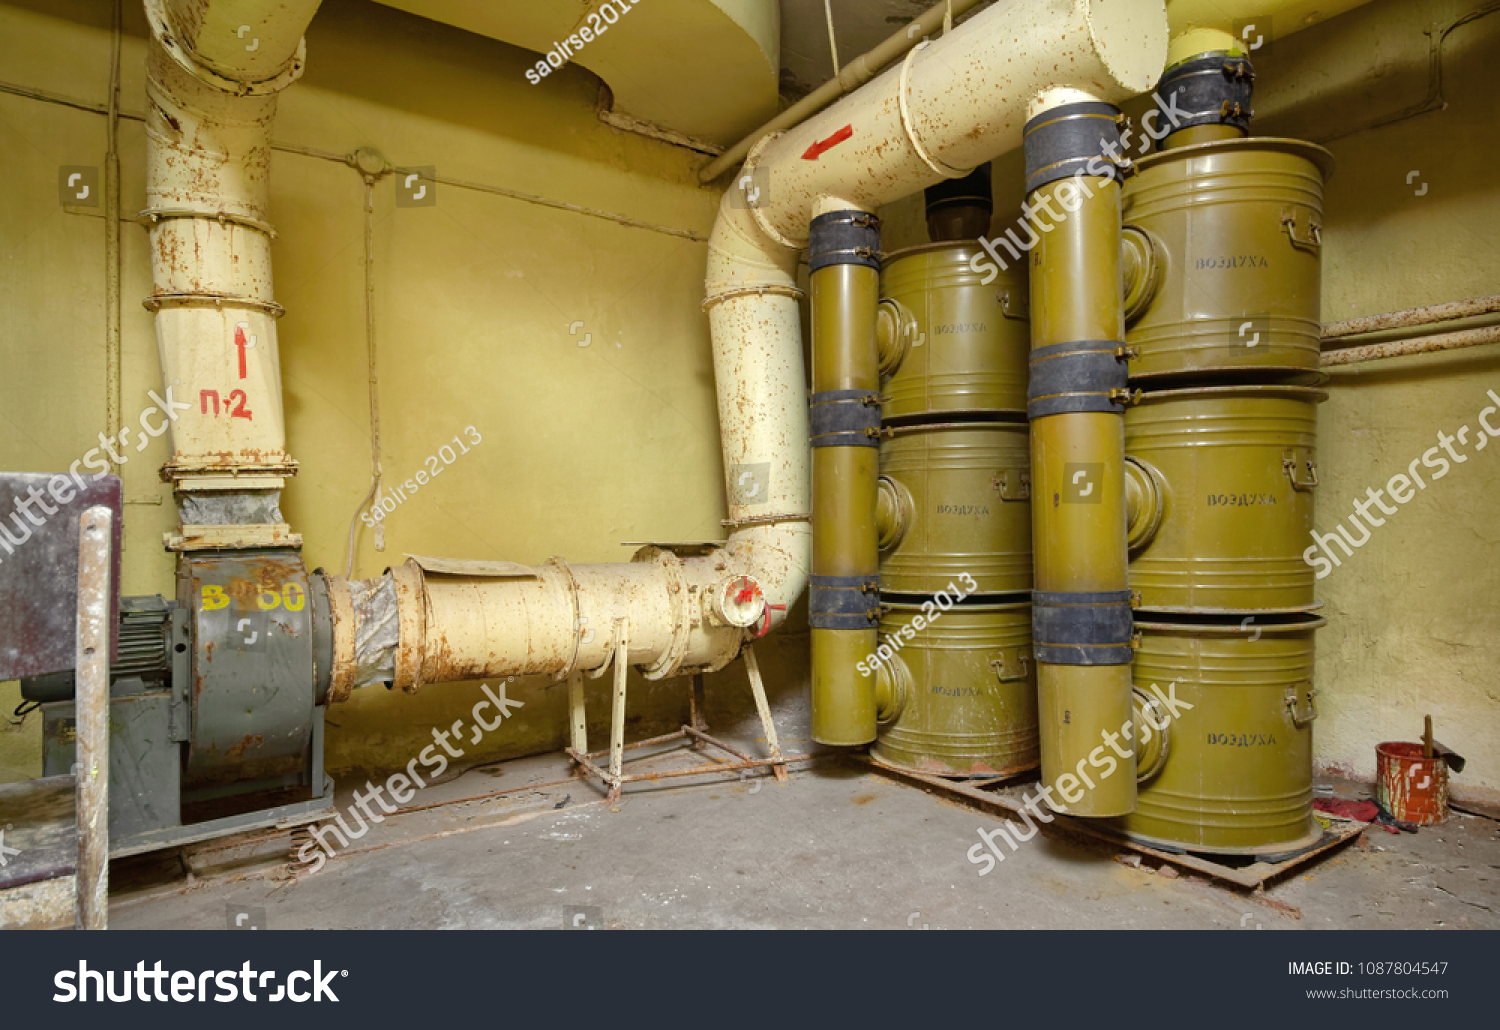 Chemical Threats >> Air Filtration System Chemical Threats Installed Stock Photo Edit